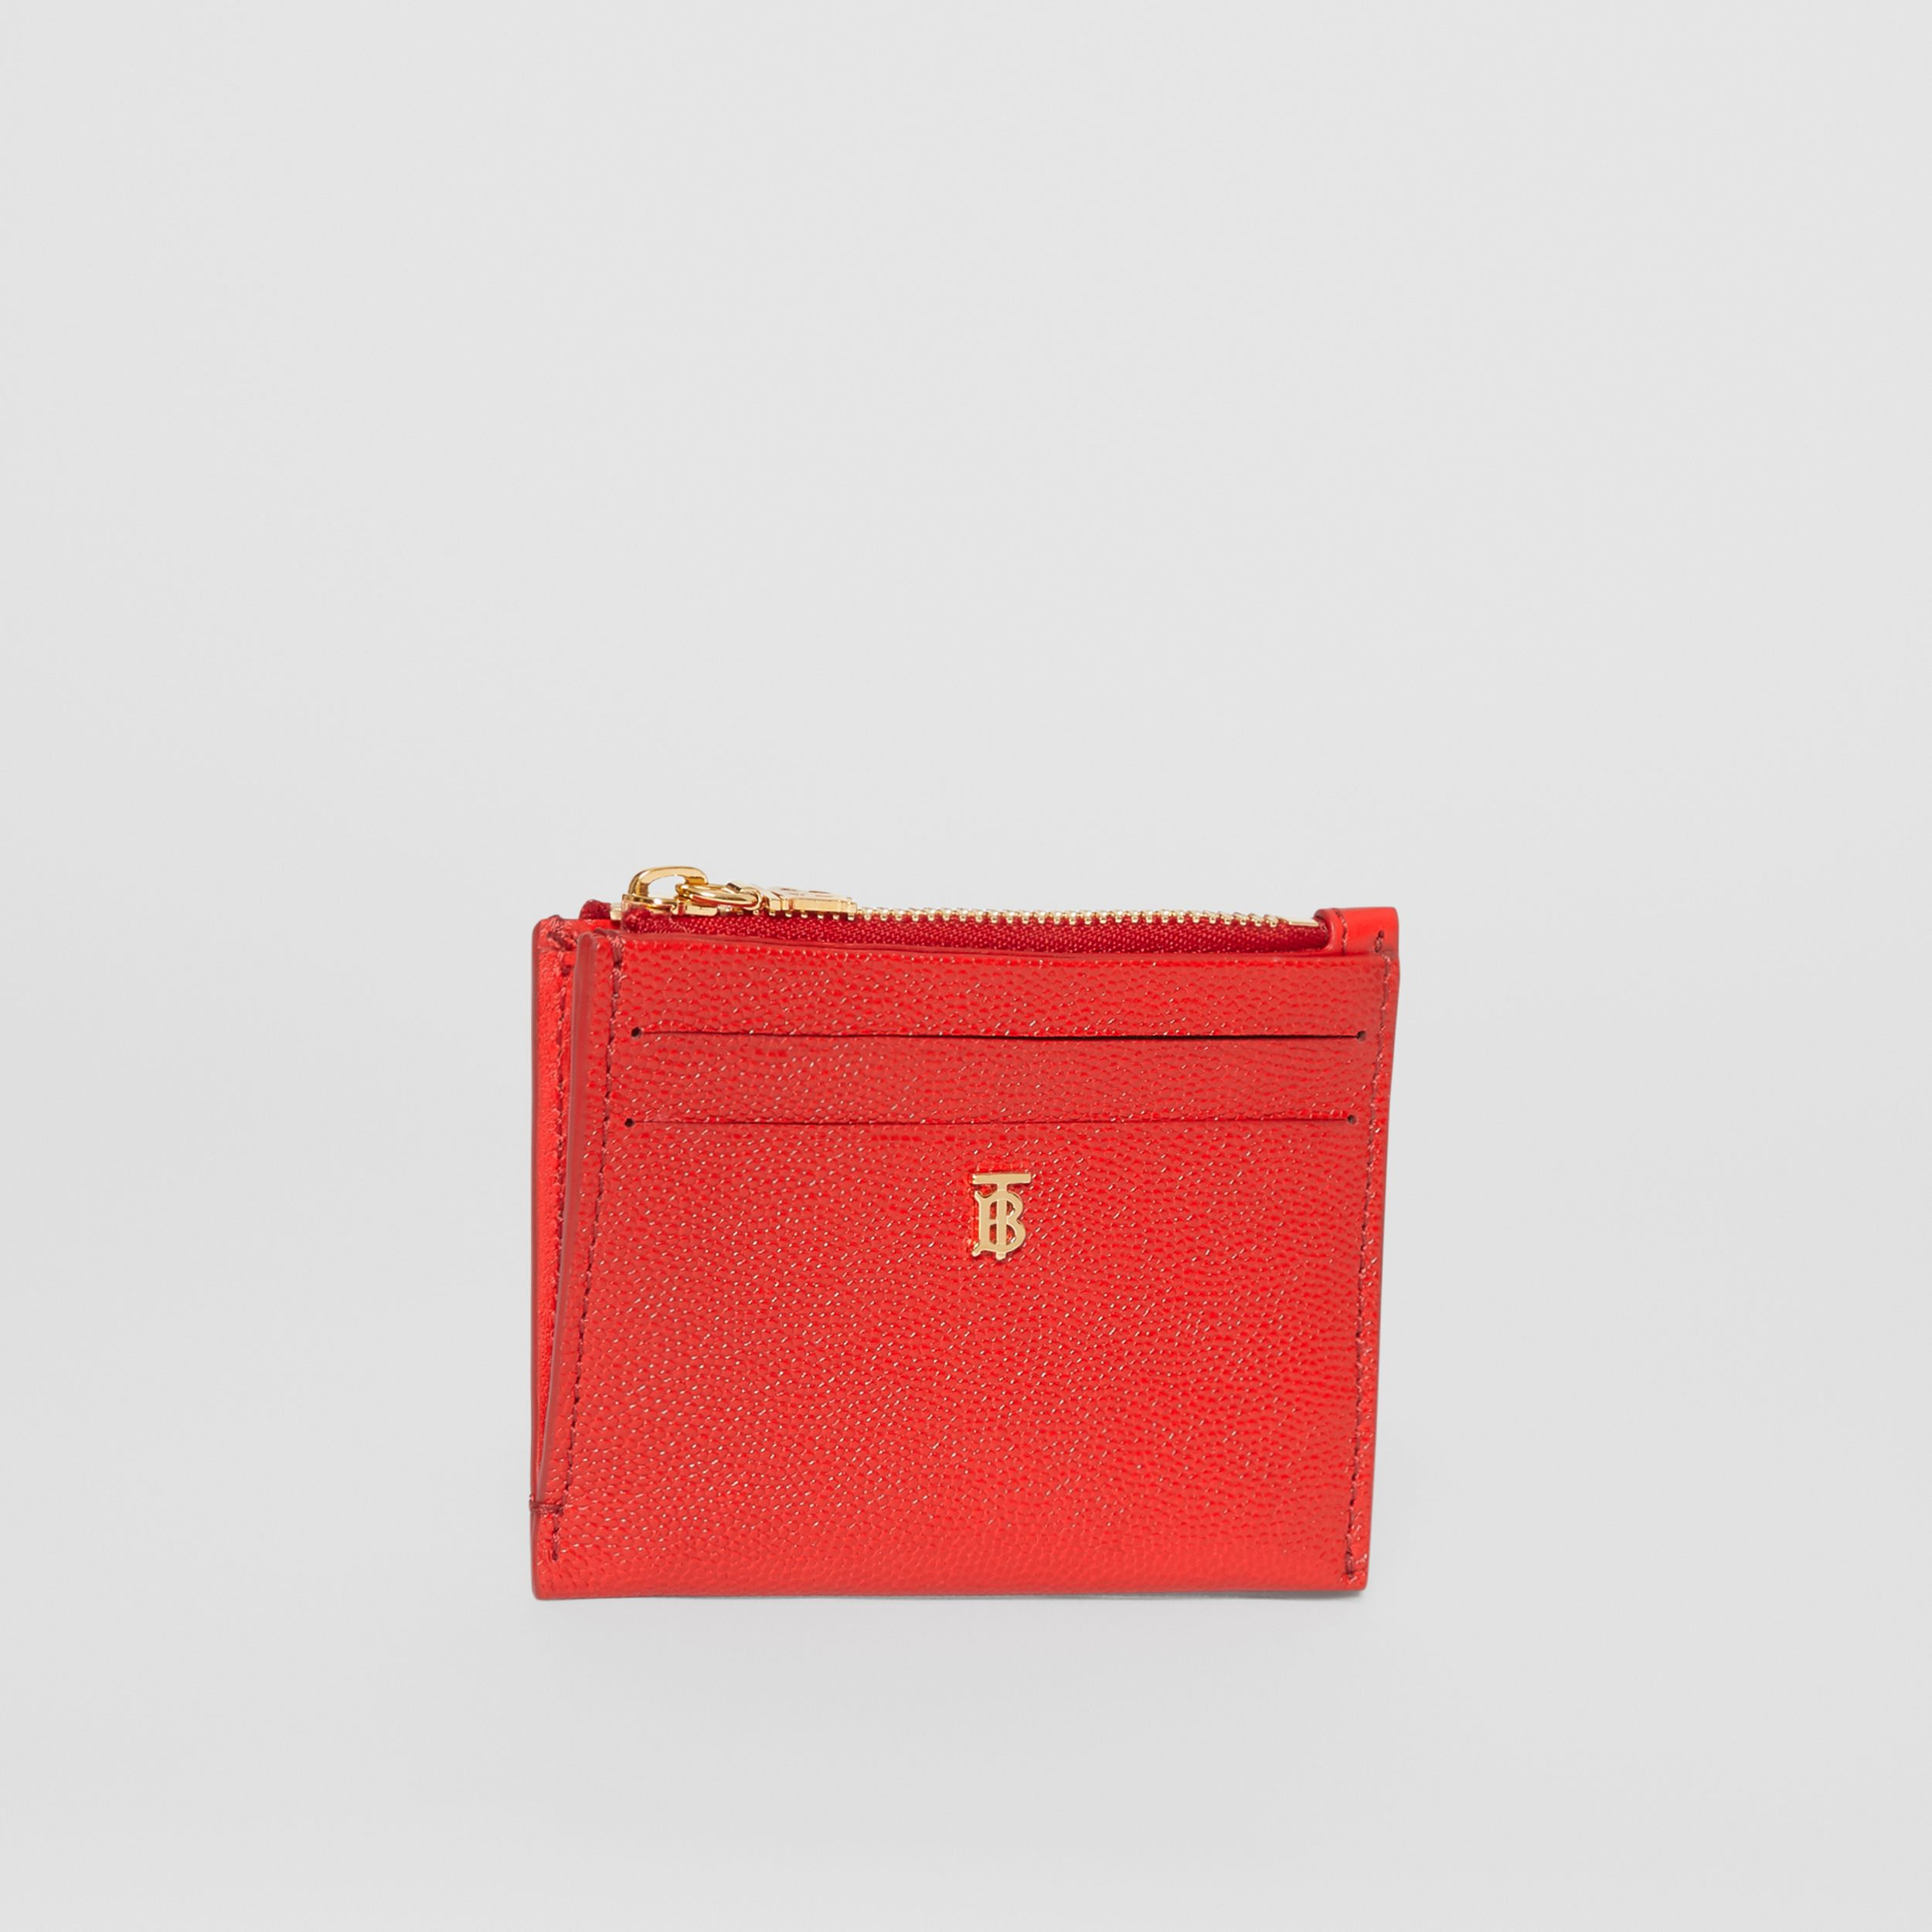 Monogram Motif Grainy Leather Zip Card Case in Bright Red - Women | Burberry - 4